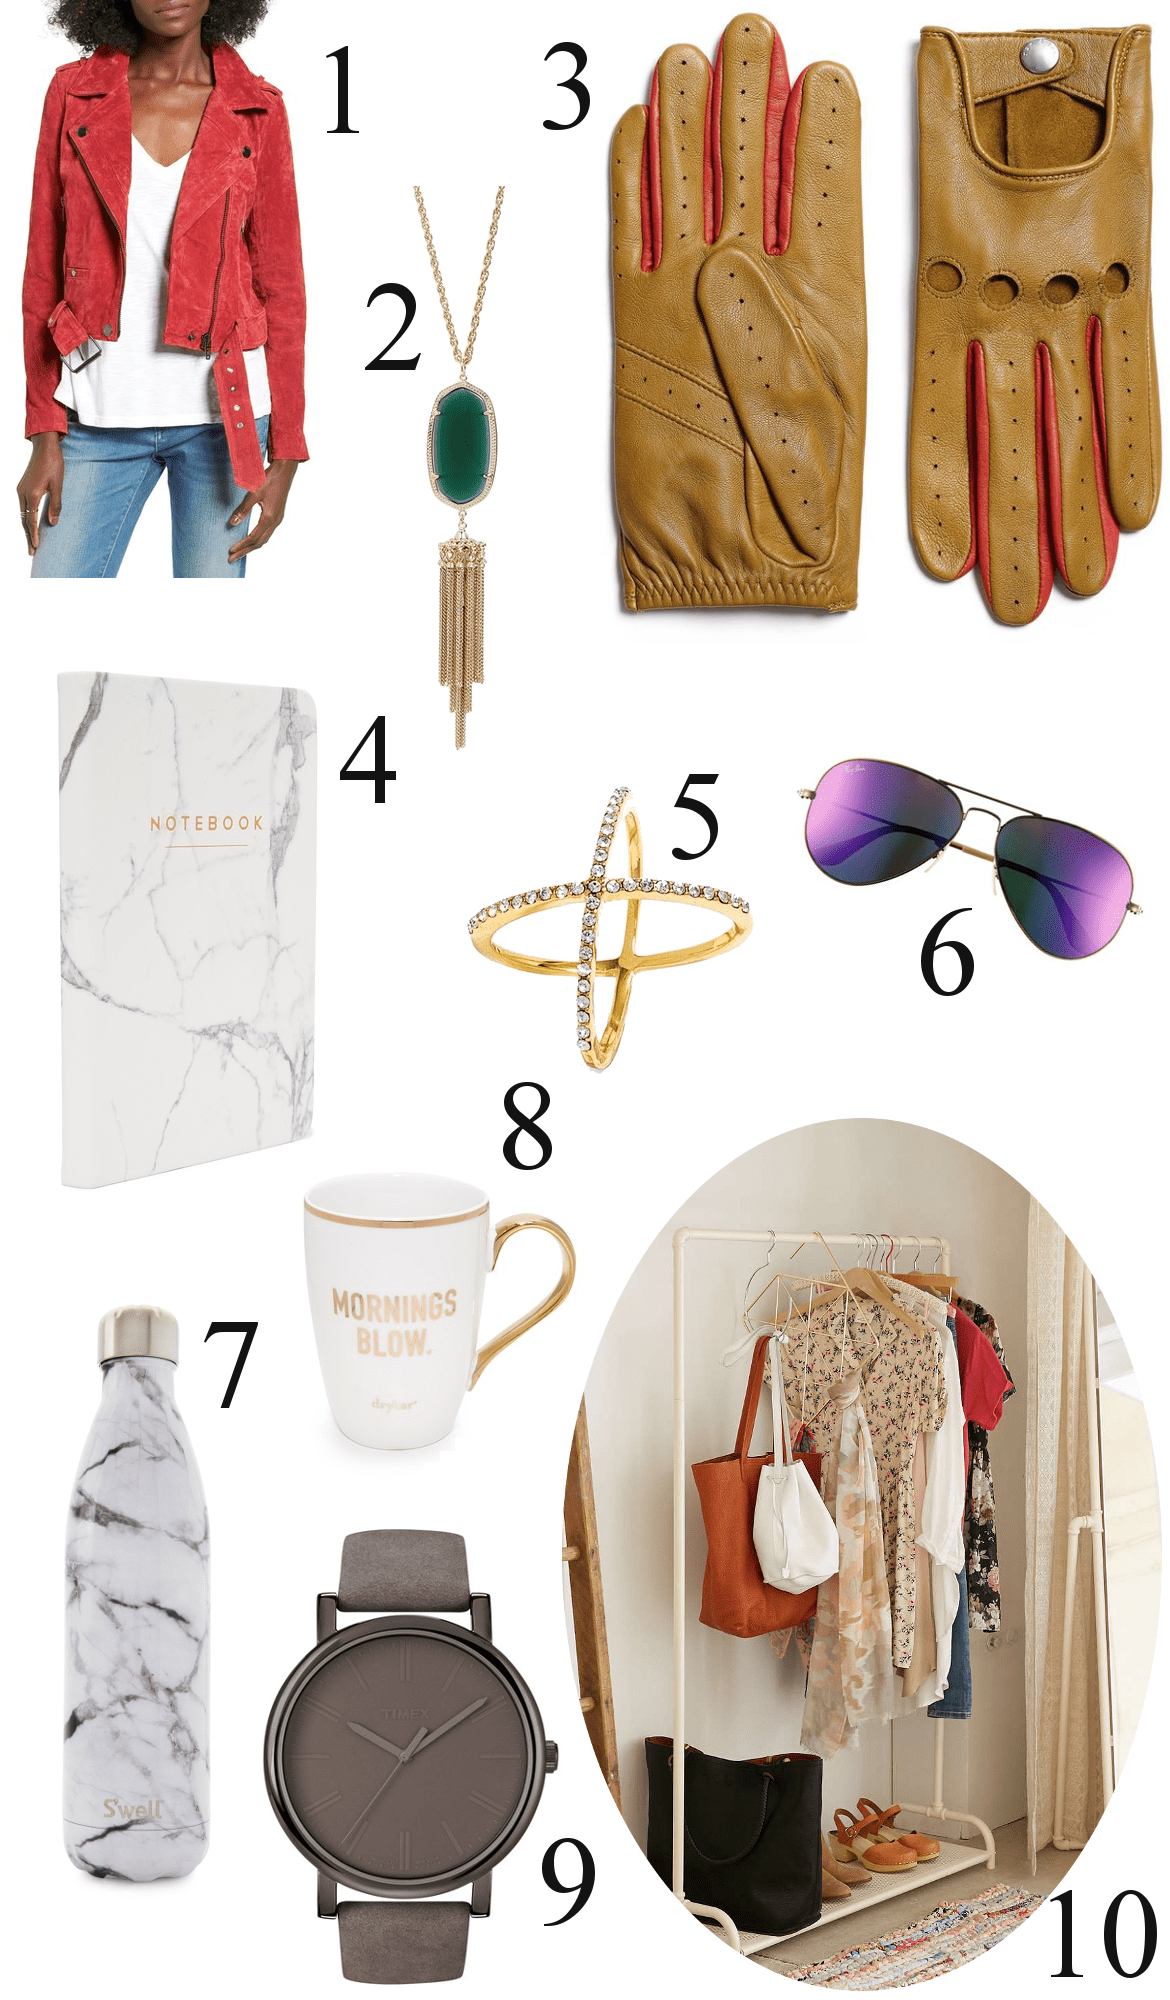 GIFT GUIDE: FOR HER by Fashion in Flight